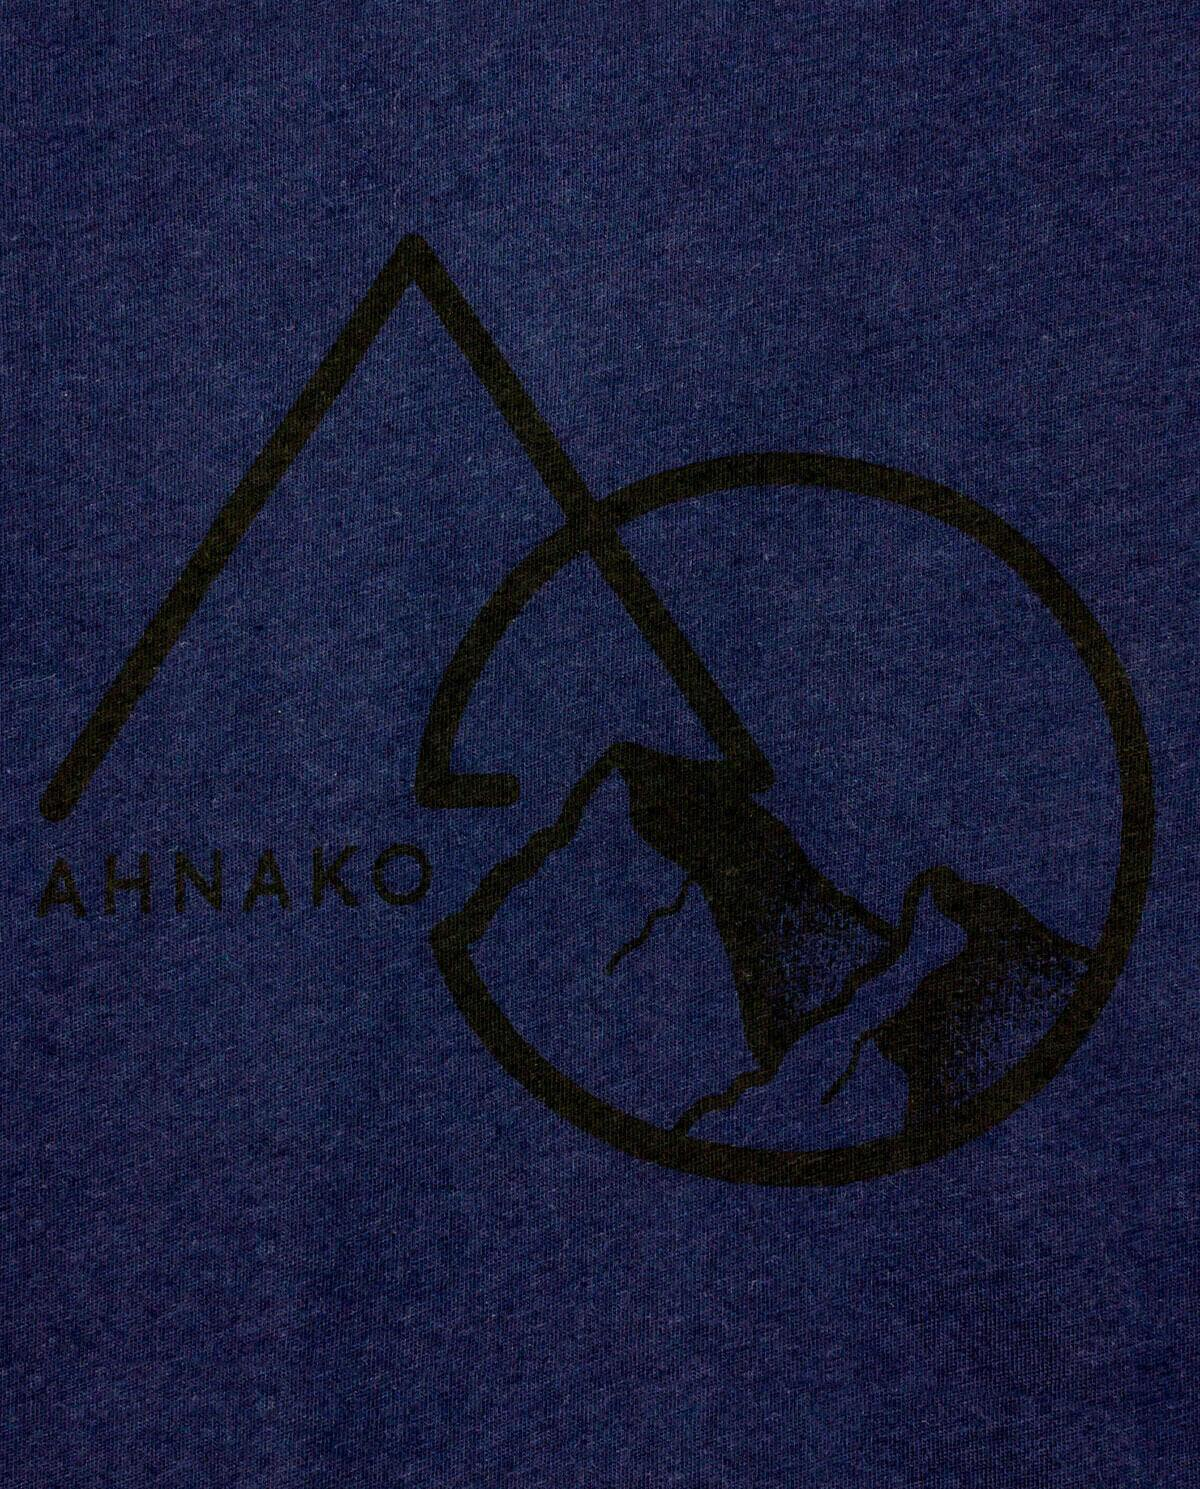 Ahnako Women's Mountains - Midnight